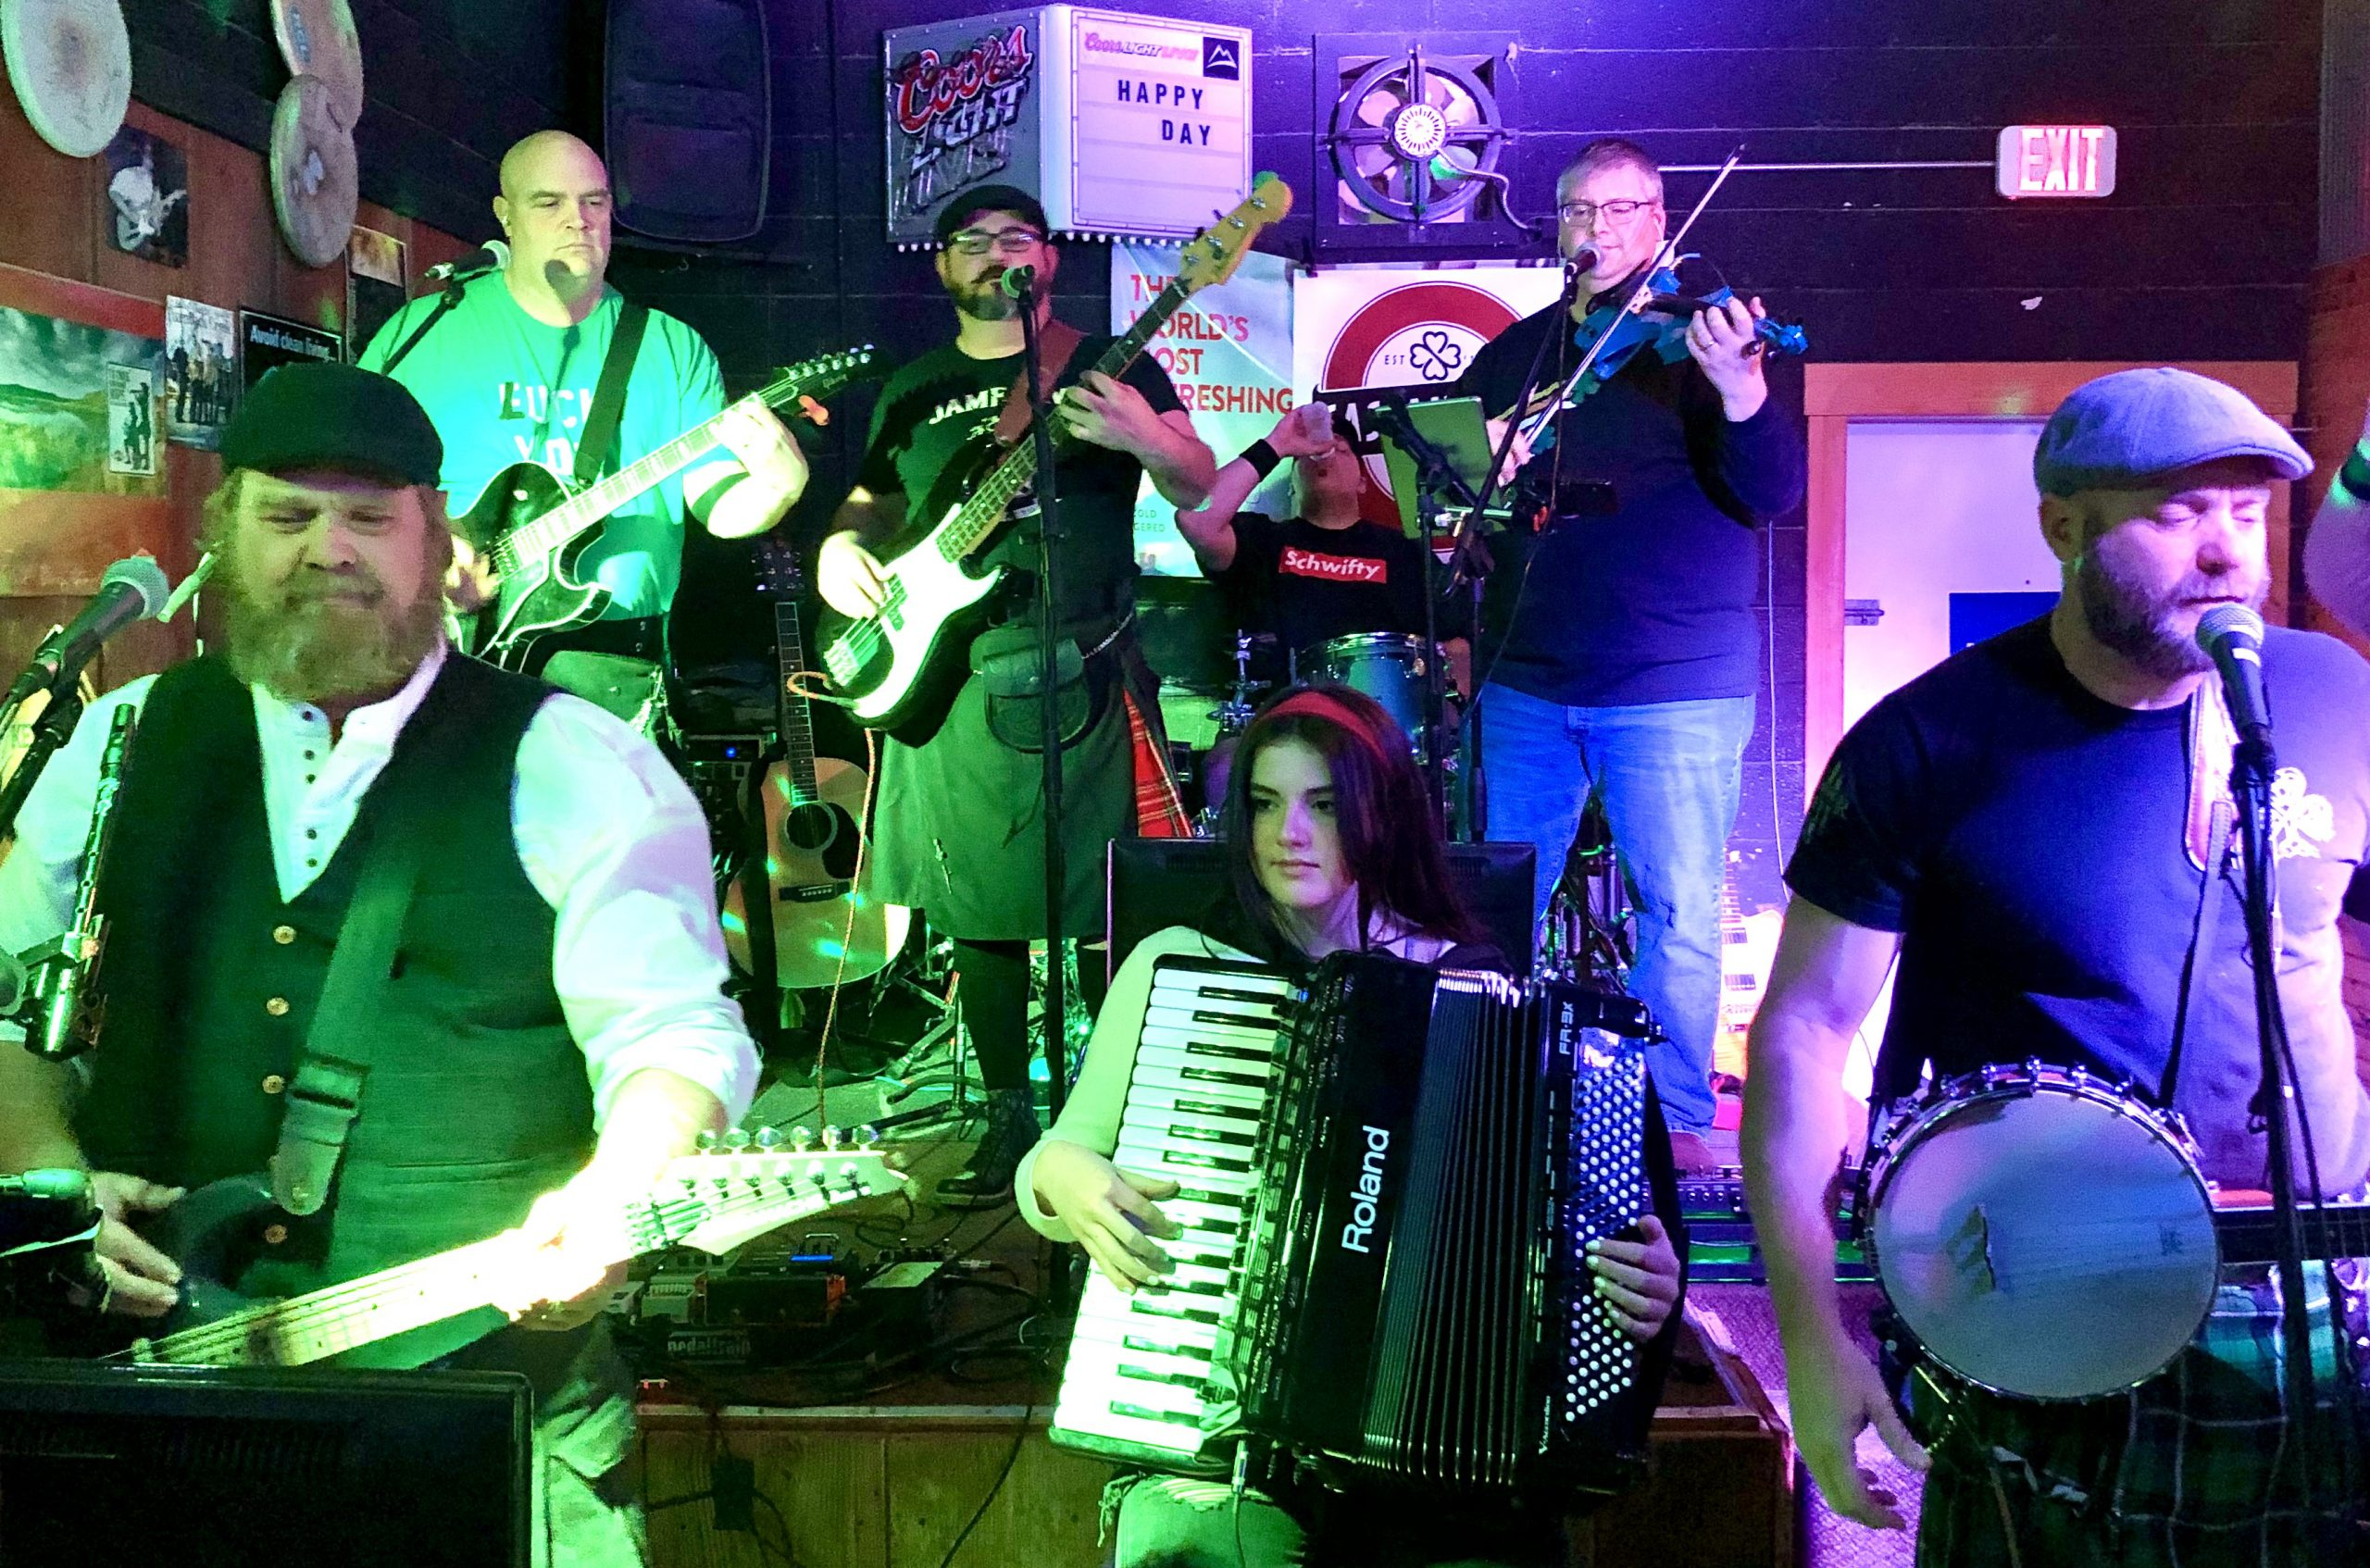 Meg Werner and the accordion go hand-in-hand